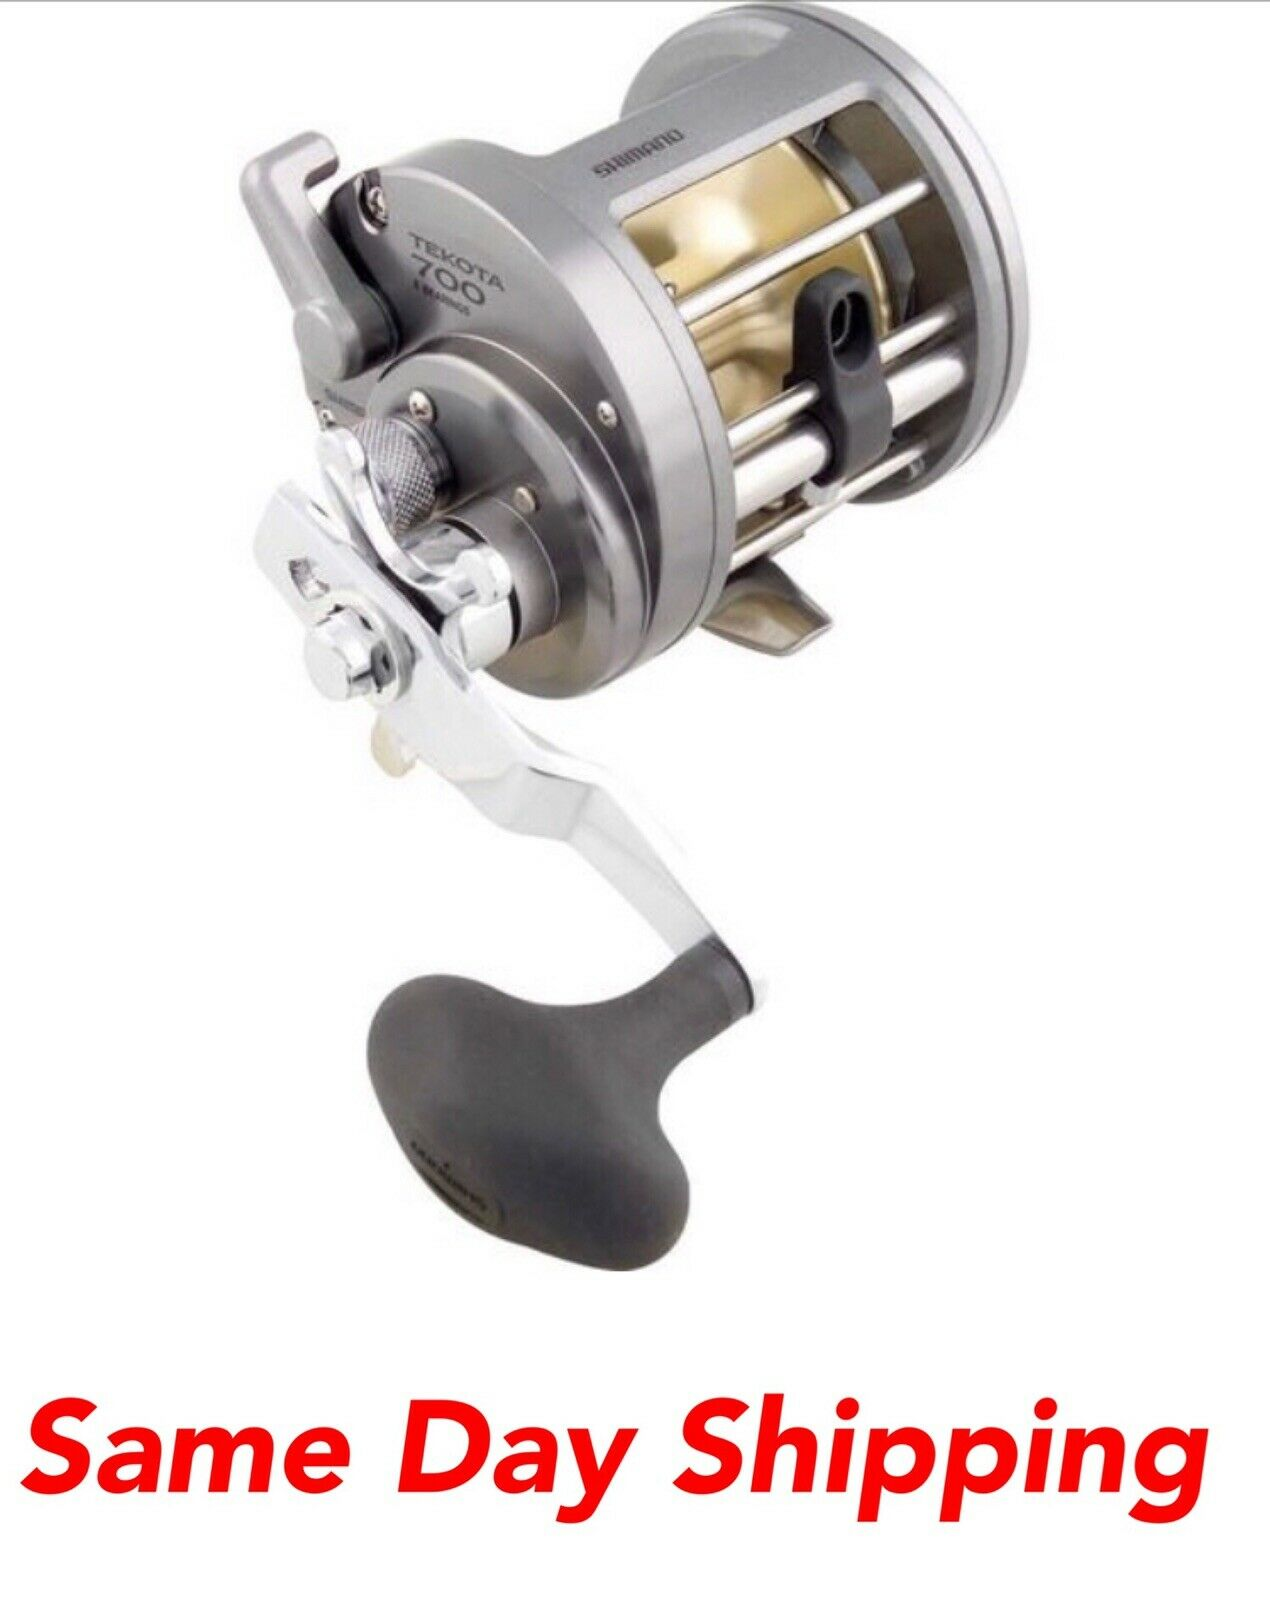 NEW SHIMANO  TEKOTA 700 LEVELWIND CONVENTIONAL SALTWATER REEL TEK700  first-class quality